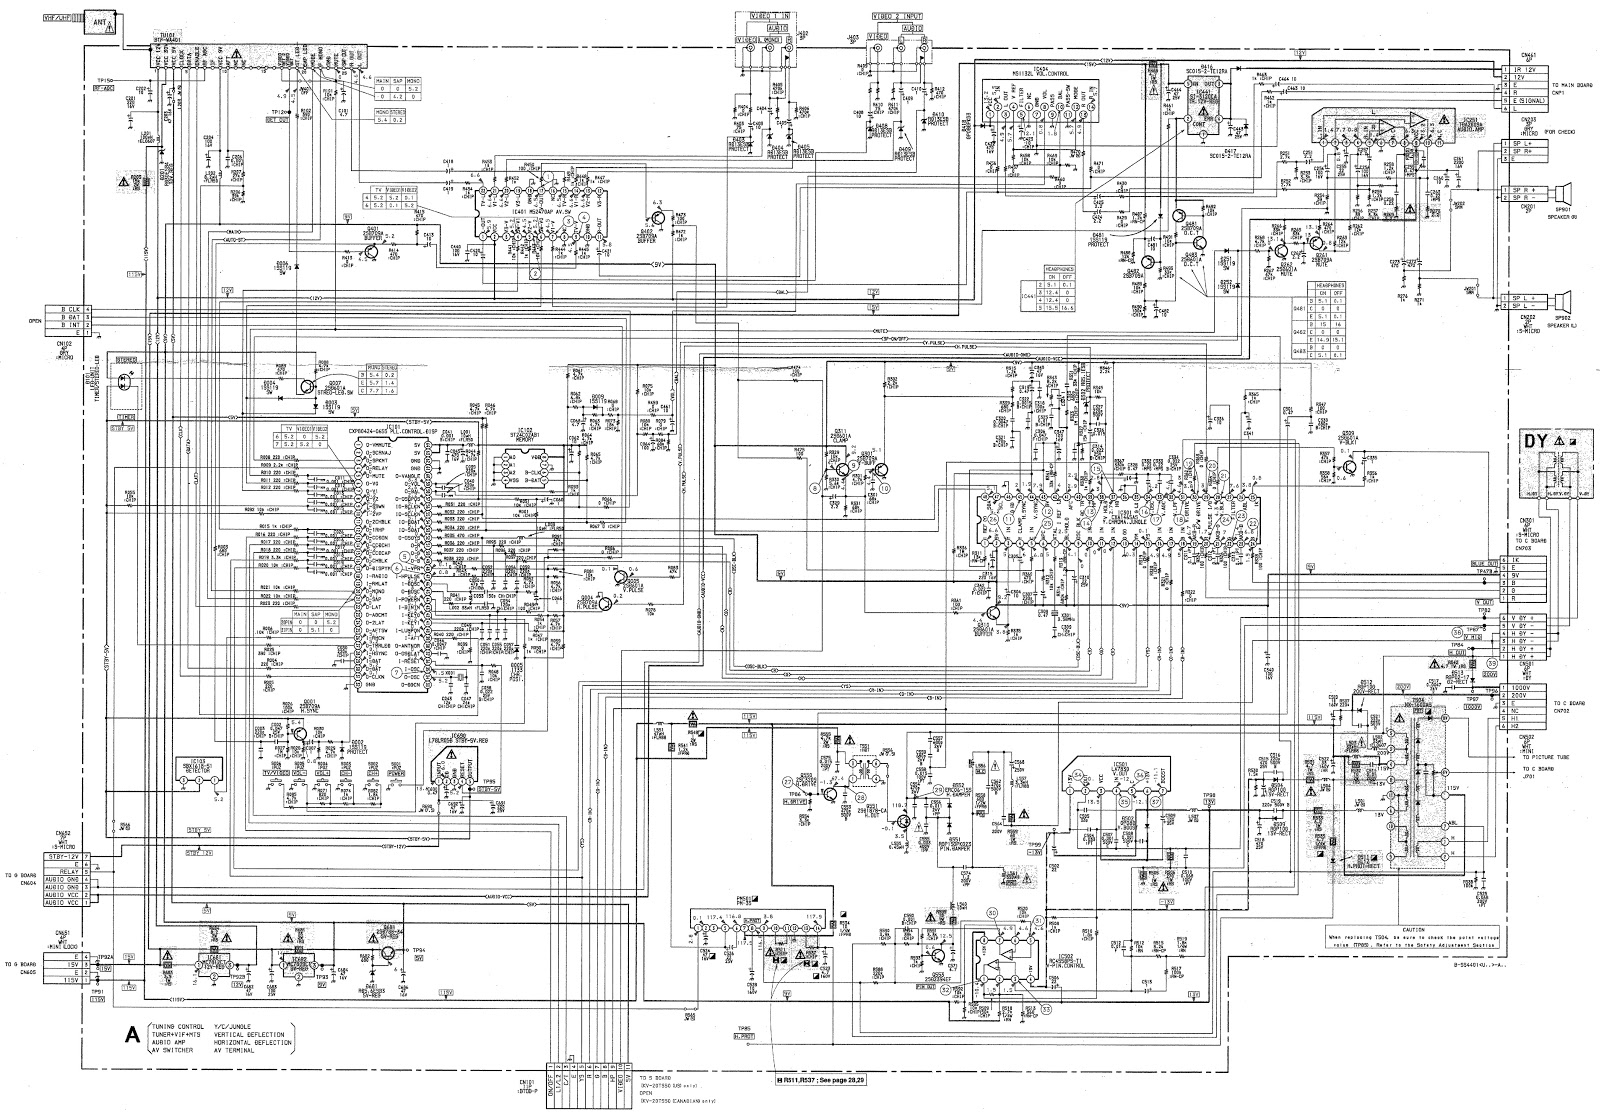 schematic diagram tv sony trinitron  sony kv fv trinitron